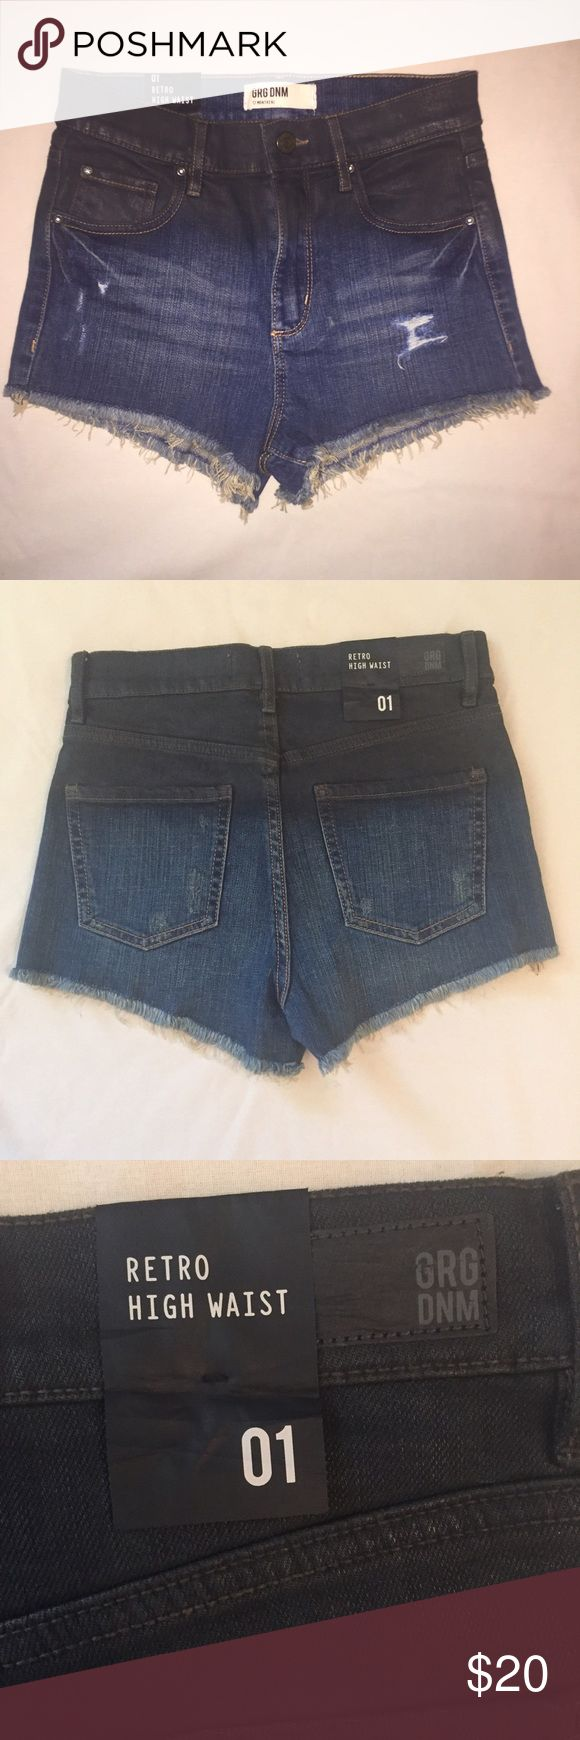 GRG DNM Retro High Waist Hombre Denim Shorts Really cute and tendu vintage high wasted denim shorts. Distressed style featuring hombre that fades from black to denim color. New with tags/never worn! Unique shorts that are super flattering and great for summer! Urban Outfitters Shorts